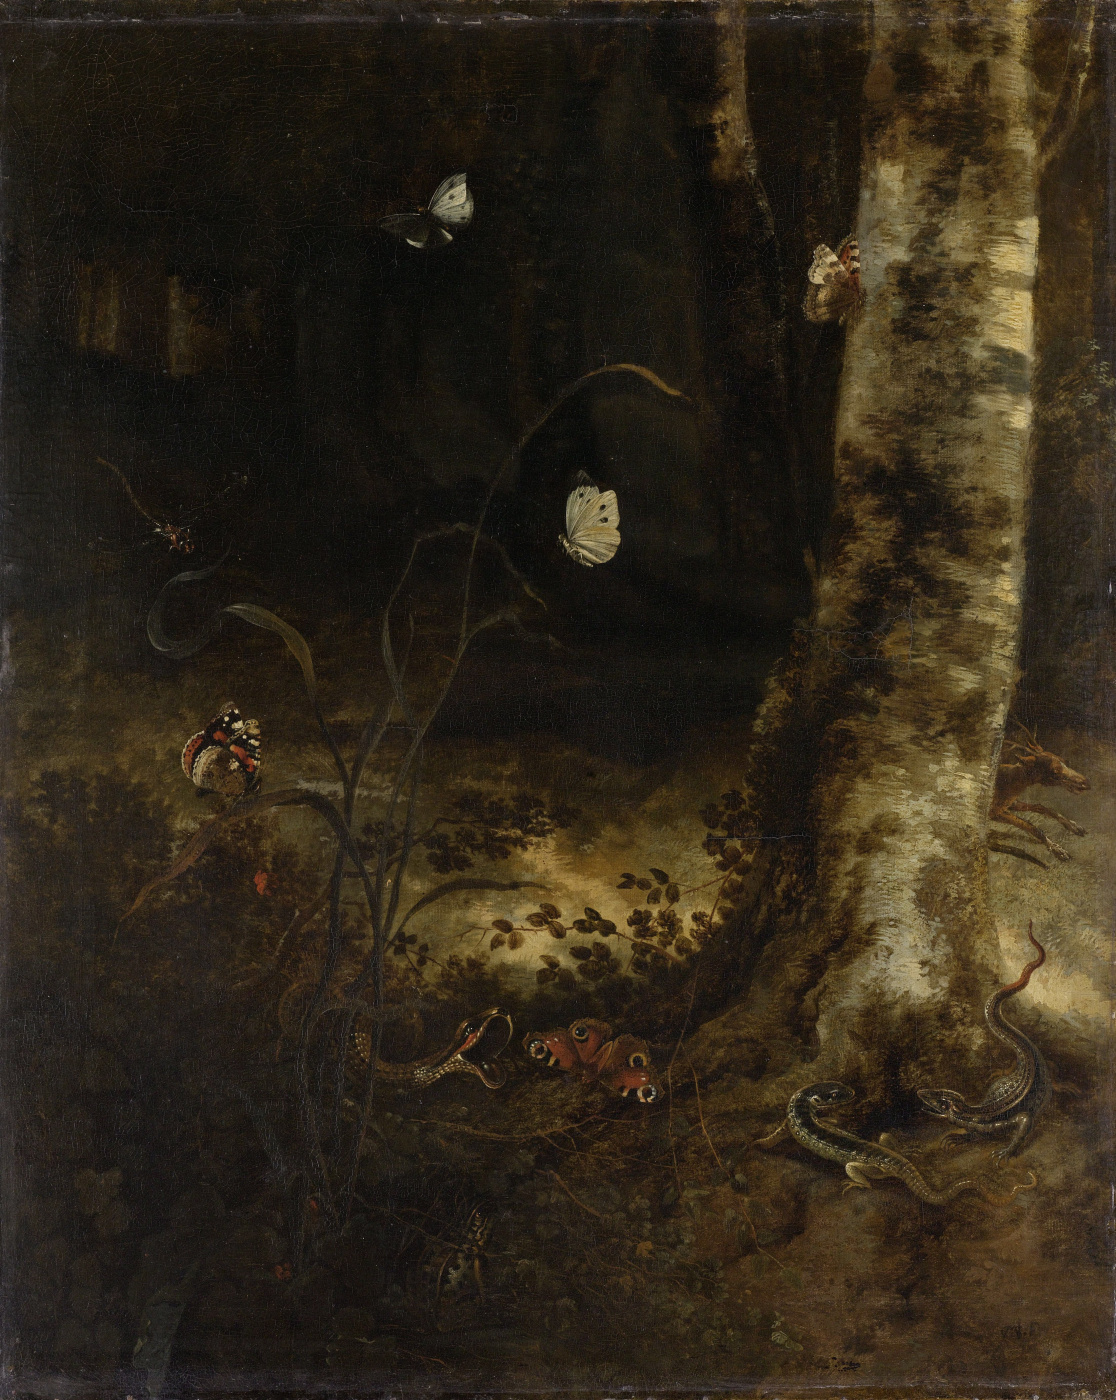 Otto Marceus van Scriec. Underwood with snake, lizards, butterflies and other insects